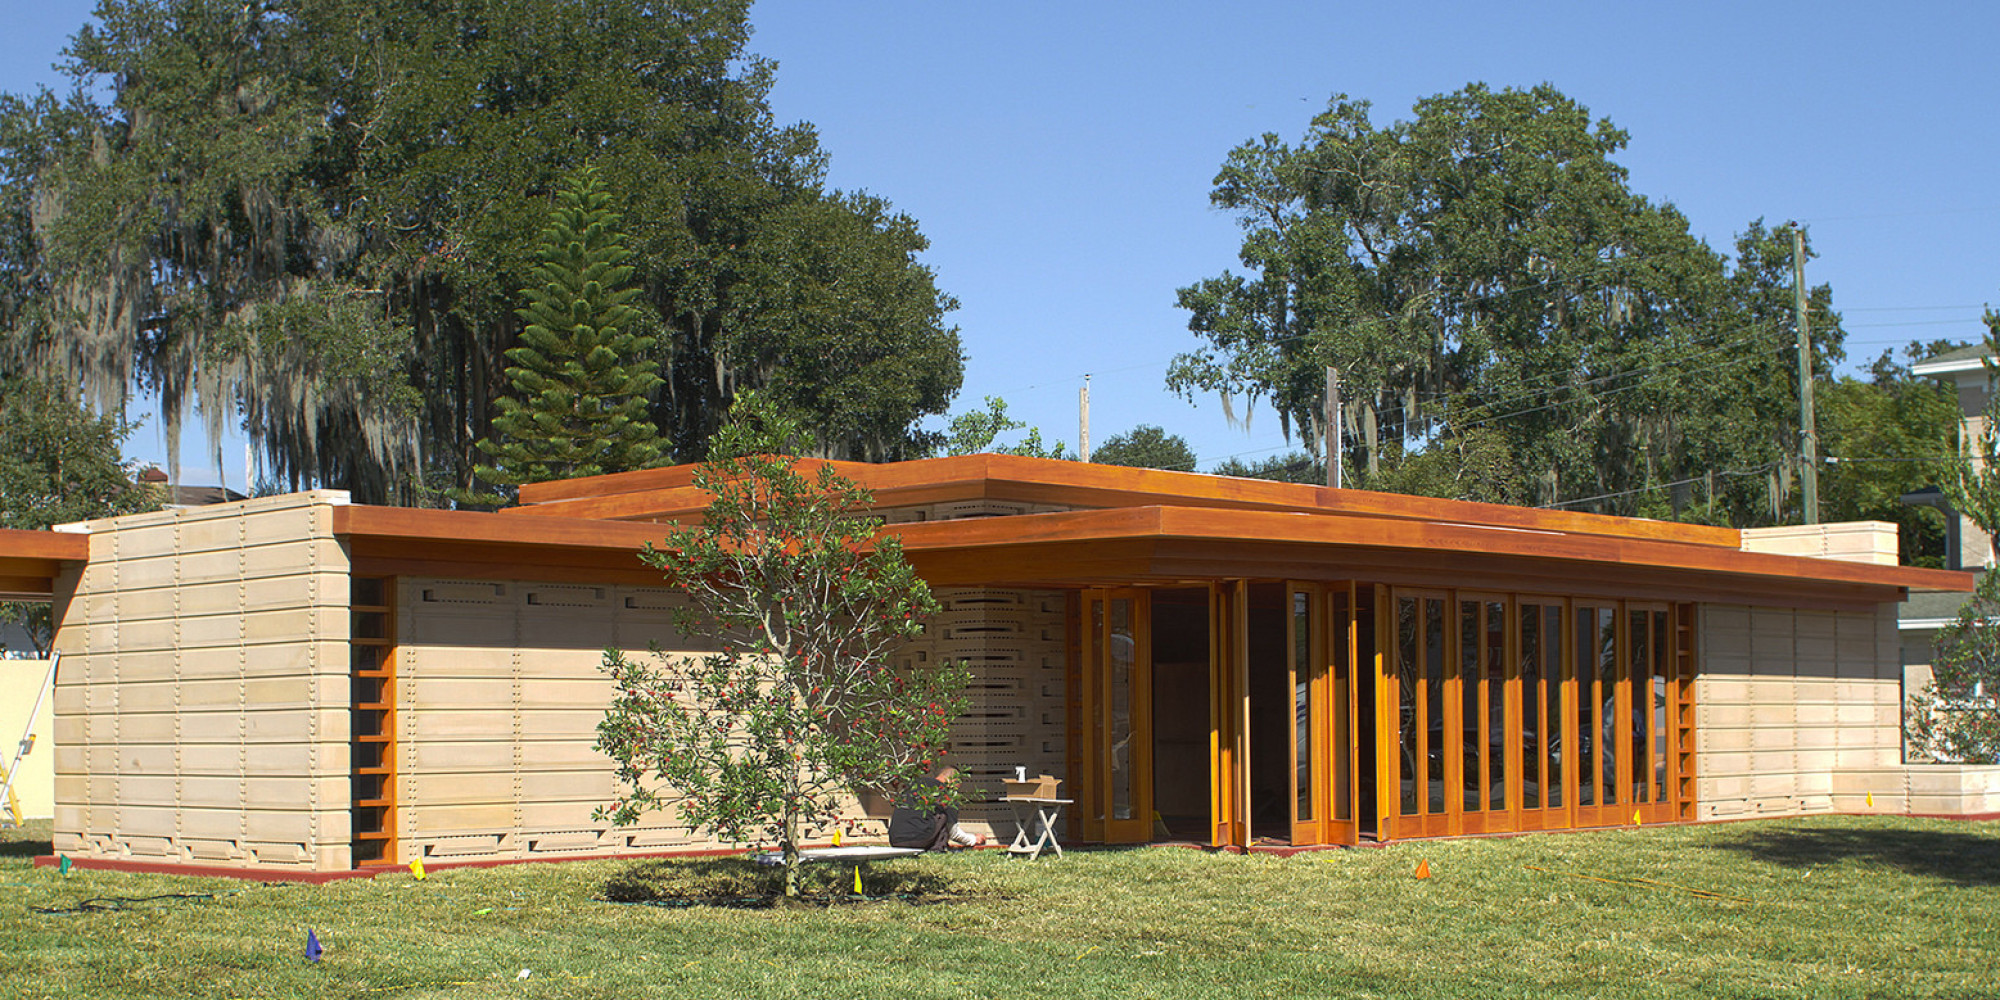 Frank Lloyd Wright S Usonian Home Was 74 Years Ahead Of Its Time Photos Huffpost